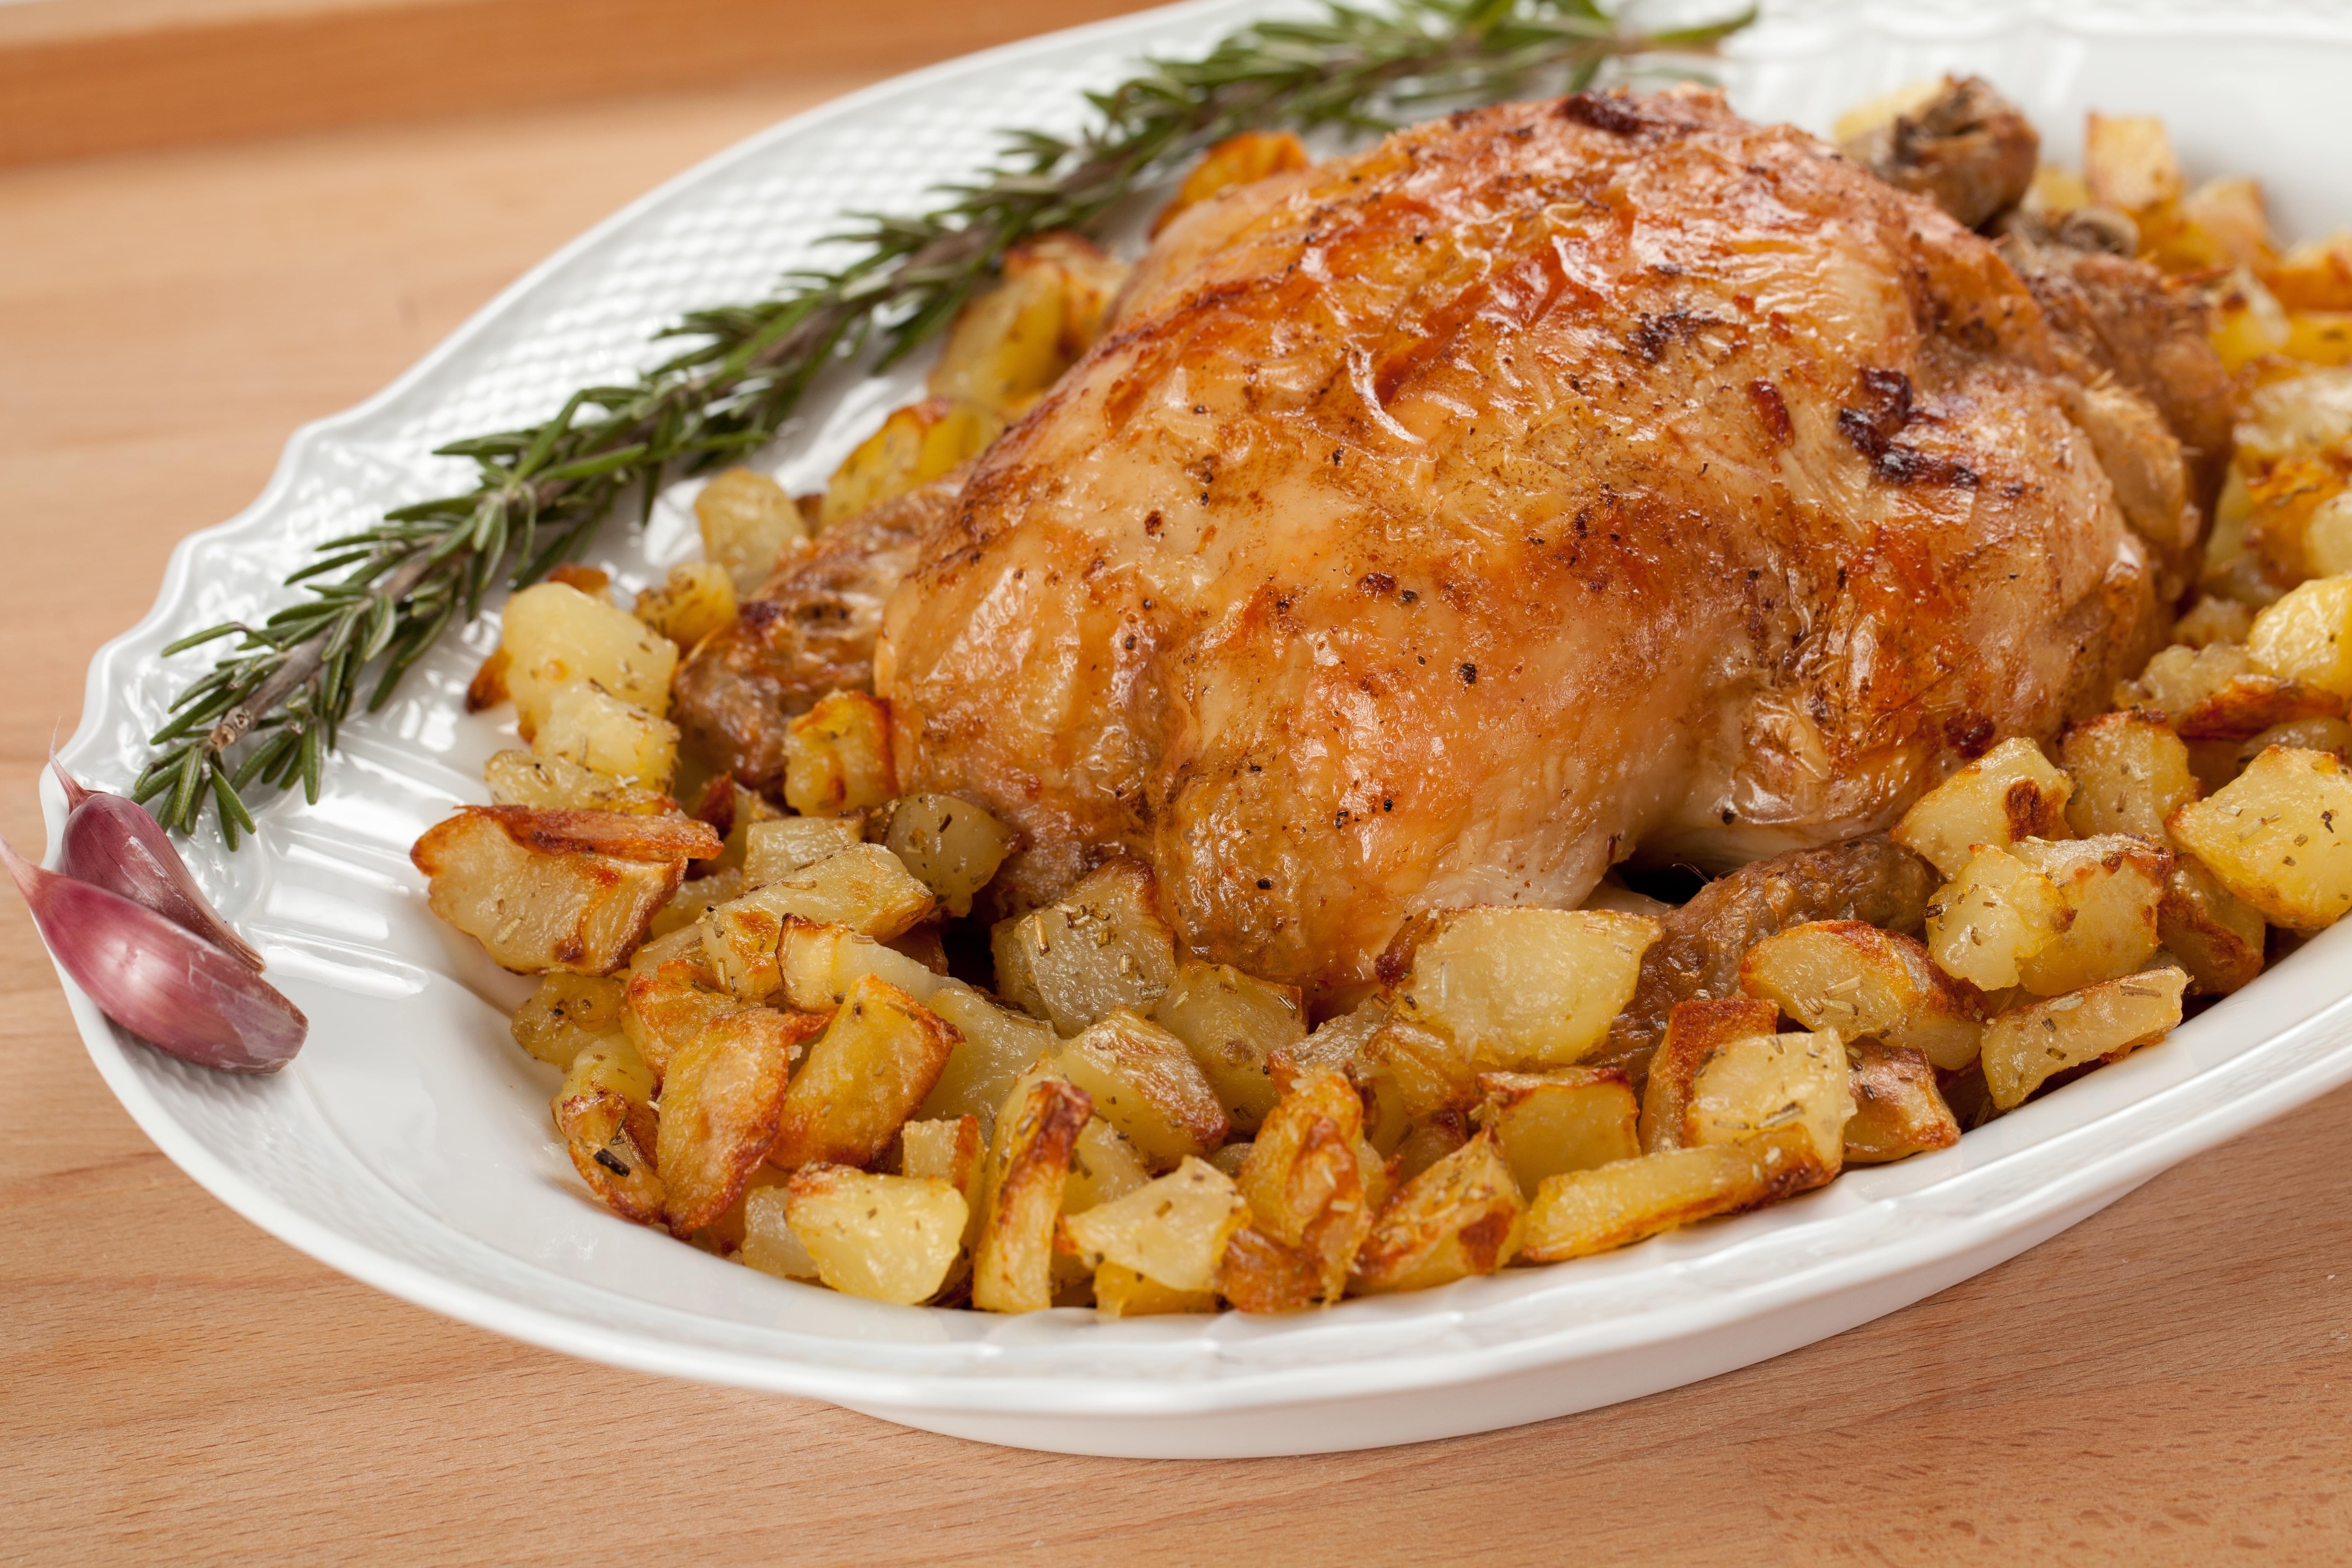 Herb Roasted Whole Chicken with Jicama